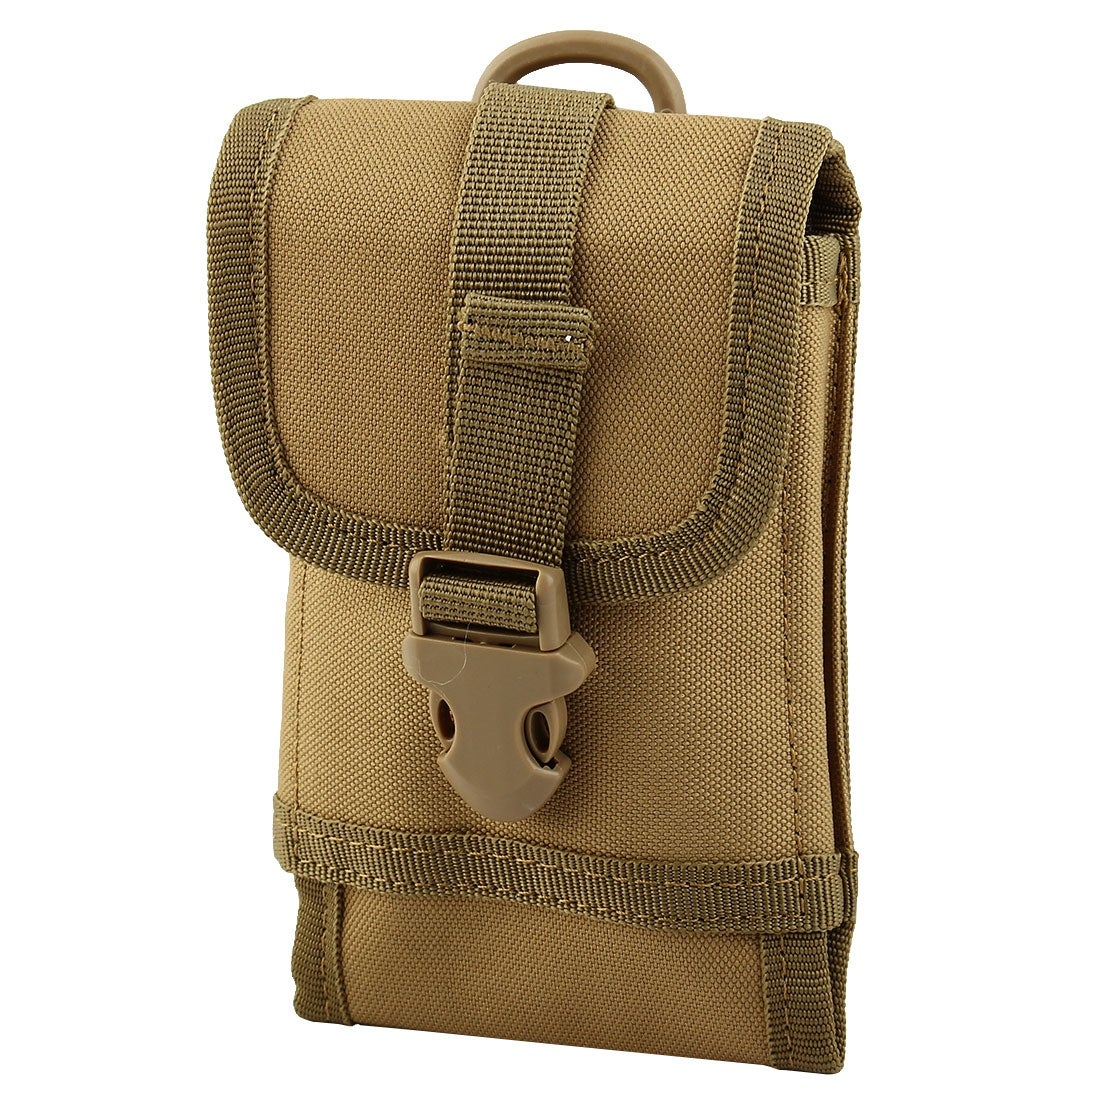 Outdoor Sport Camping Nylon Cell Phone Wallet Holder Adjustable Waist Bag Khaki